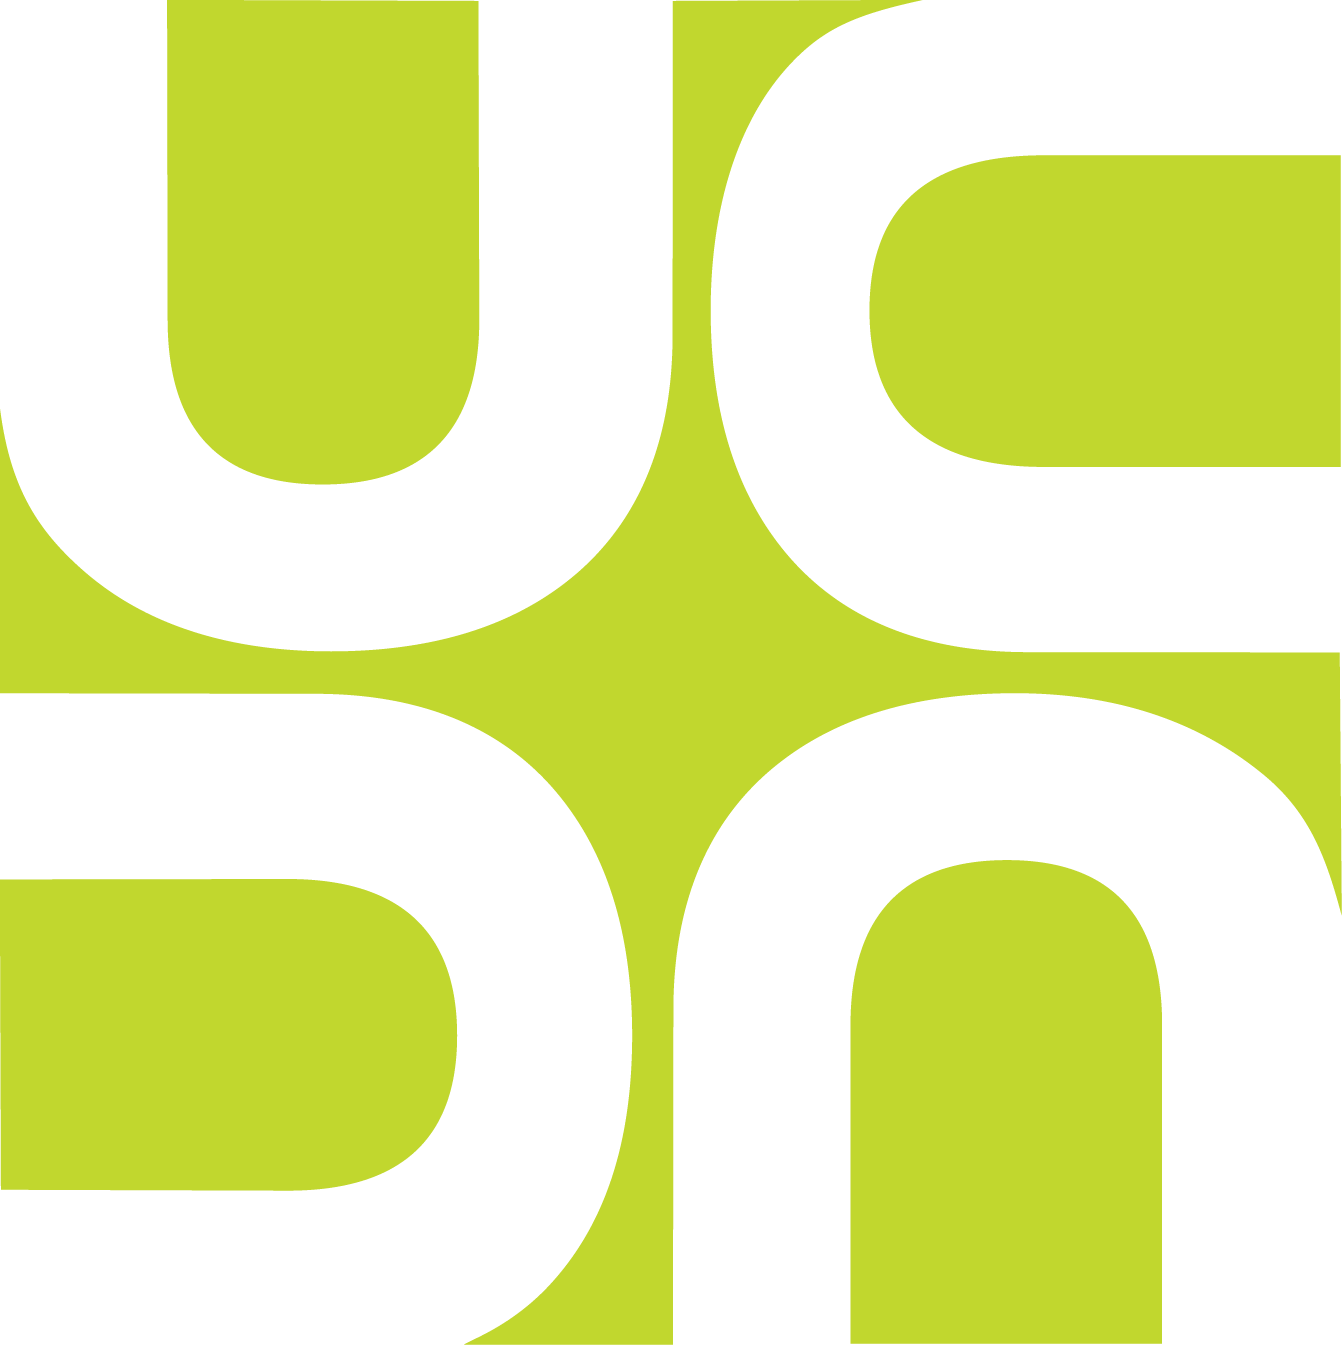 University & College Designers Association (UCDA)